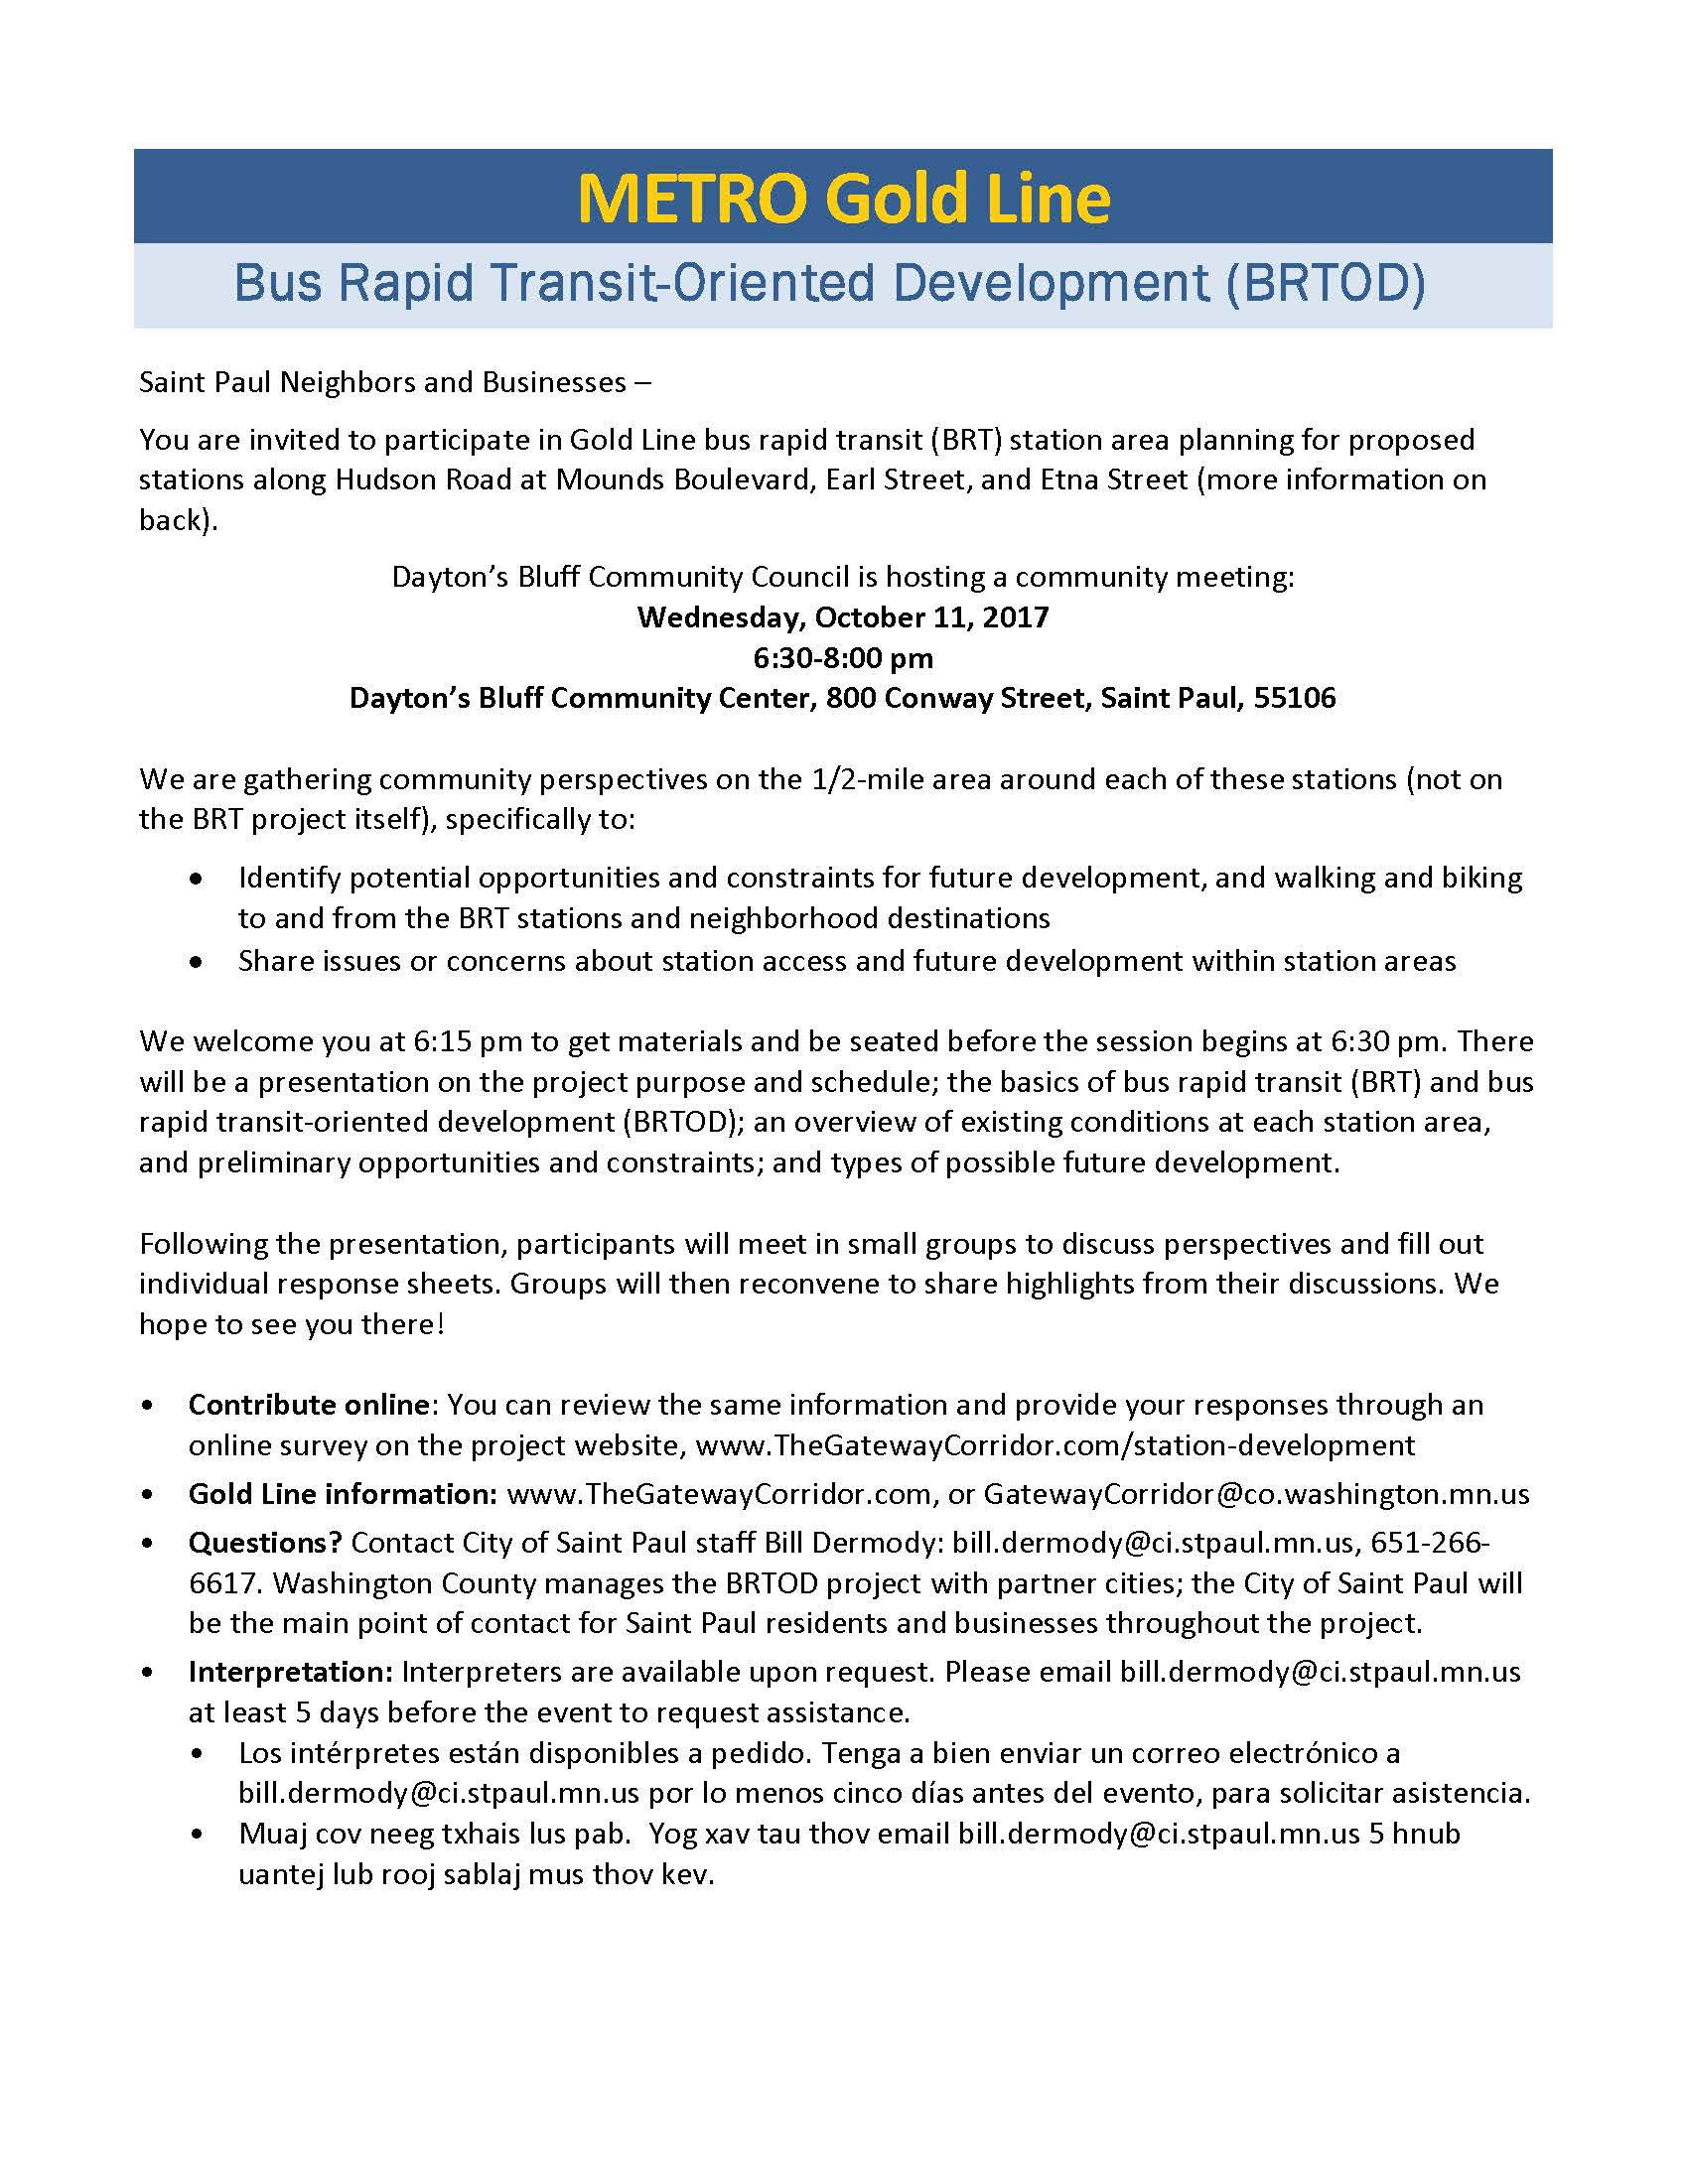 you are invited to participate in gold line bus rapid transit (brt